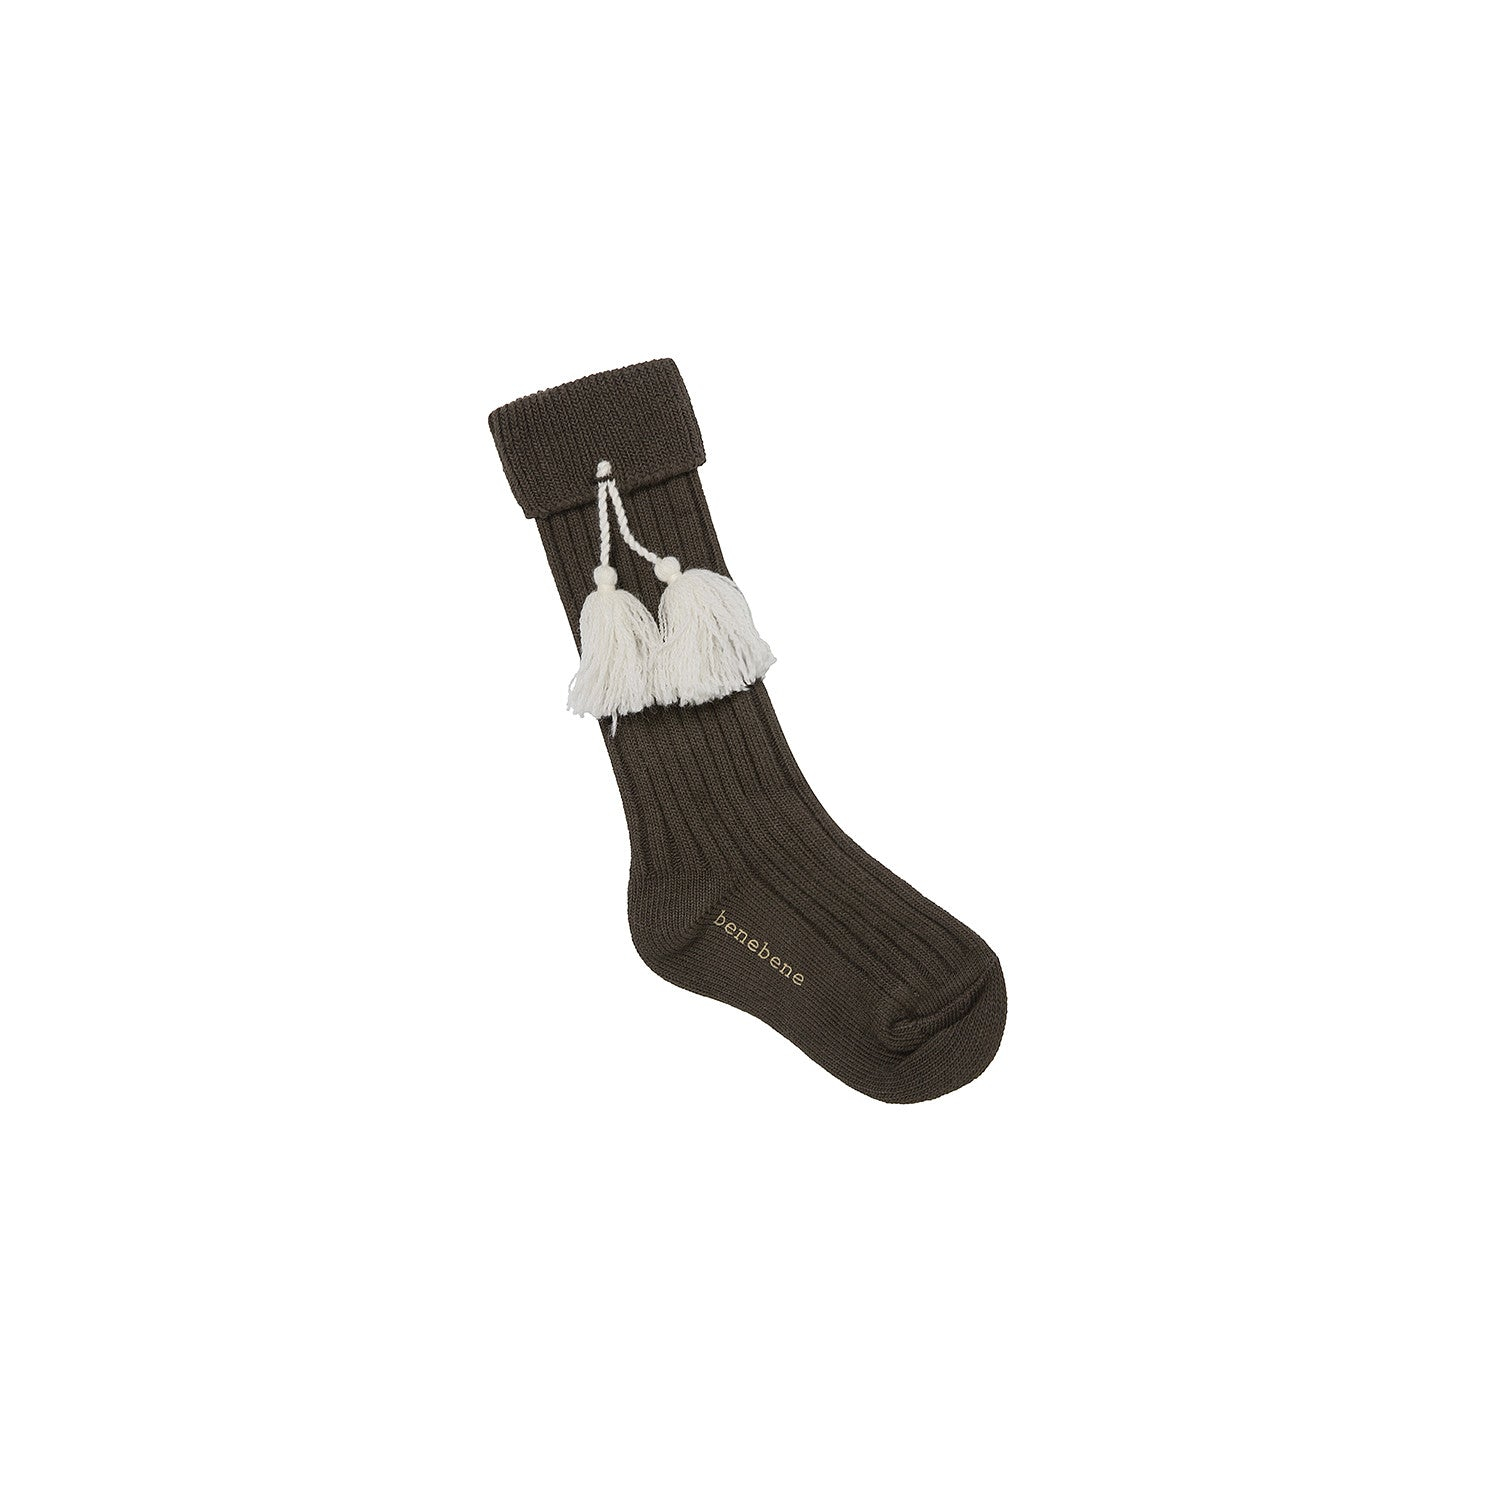 Bene Bene Dark Khaki Tassel Long Socks - Ladida